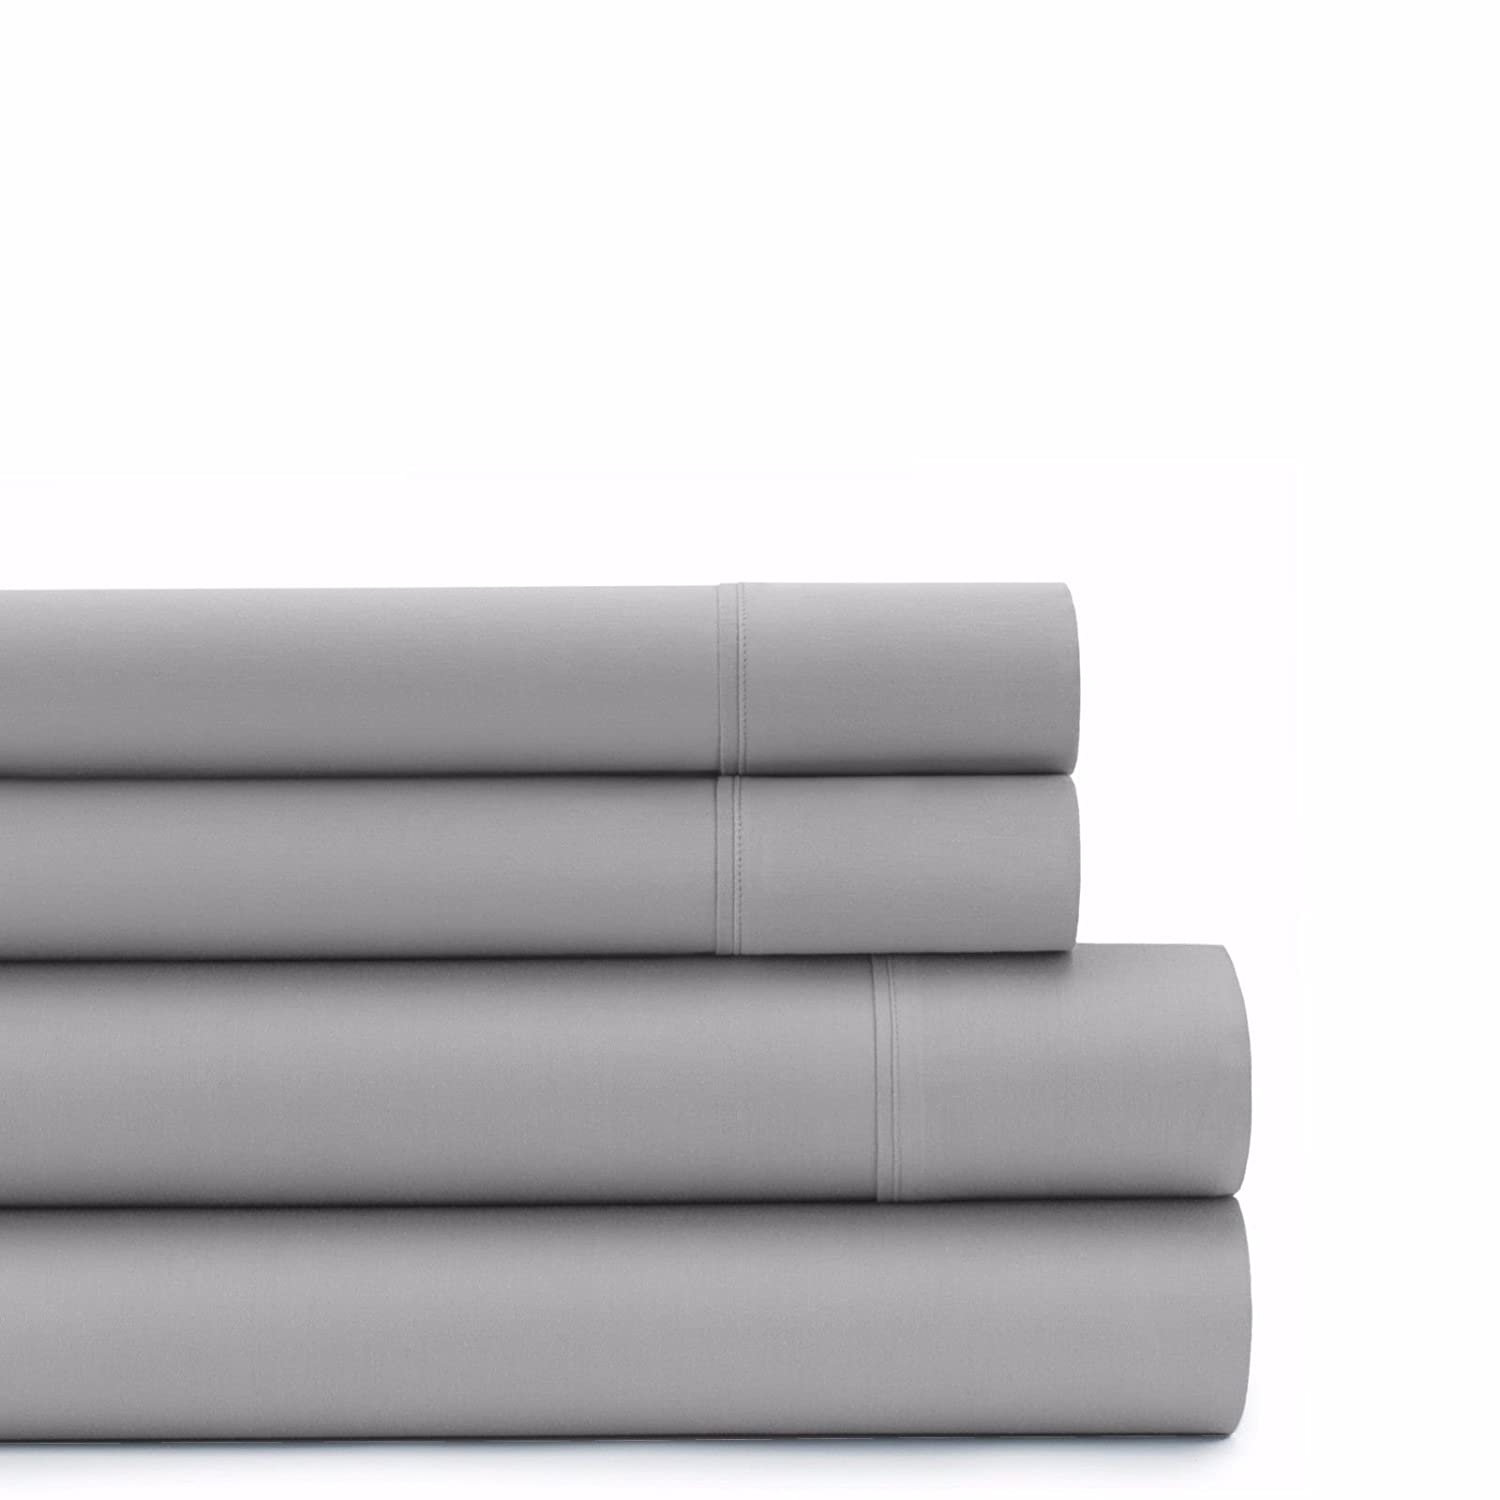 White Solid Size full By Soft/&Rich Authentic Egyptian cotton Sheet Set fits mattresses up to 19 deep 1000 TC Color